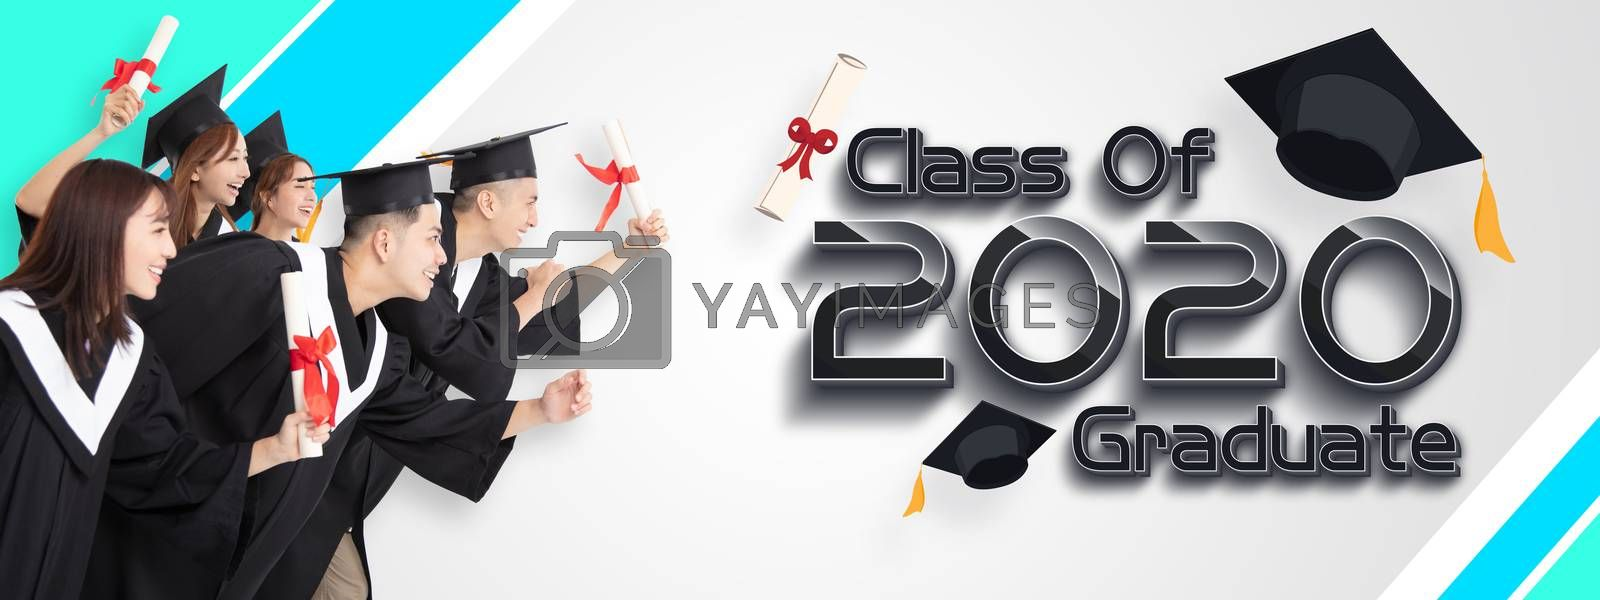 Group of Students Running and Celebrating Graduation 2020